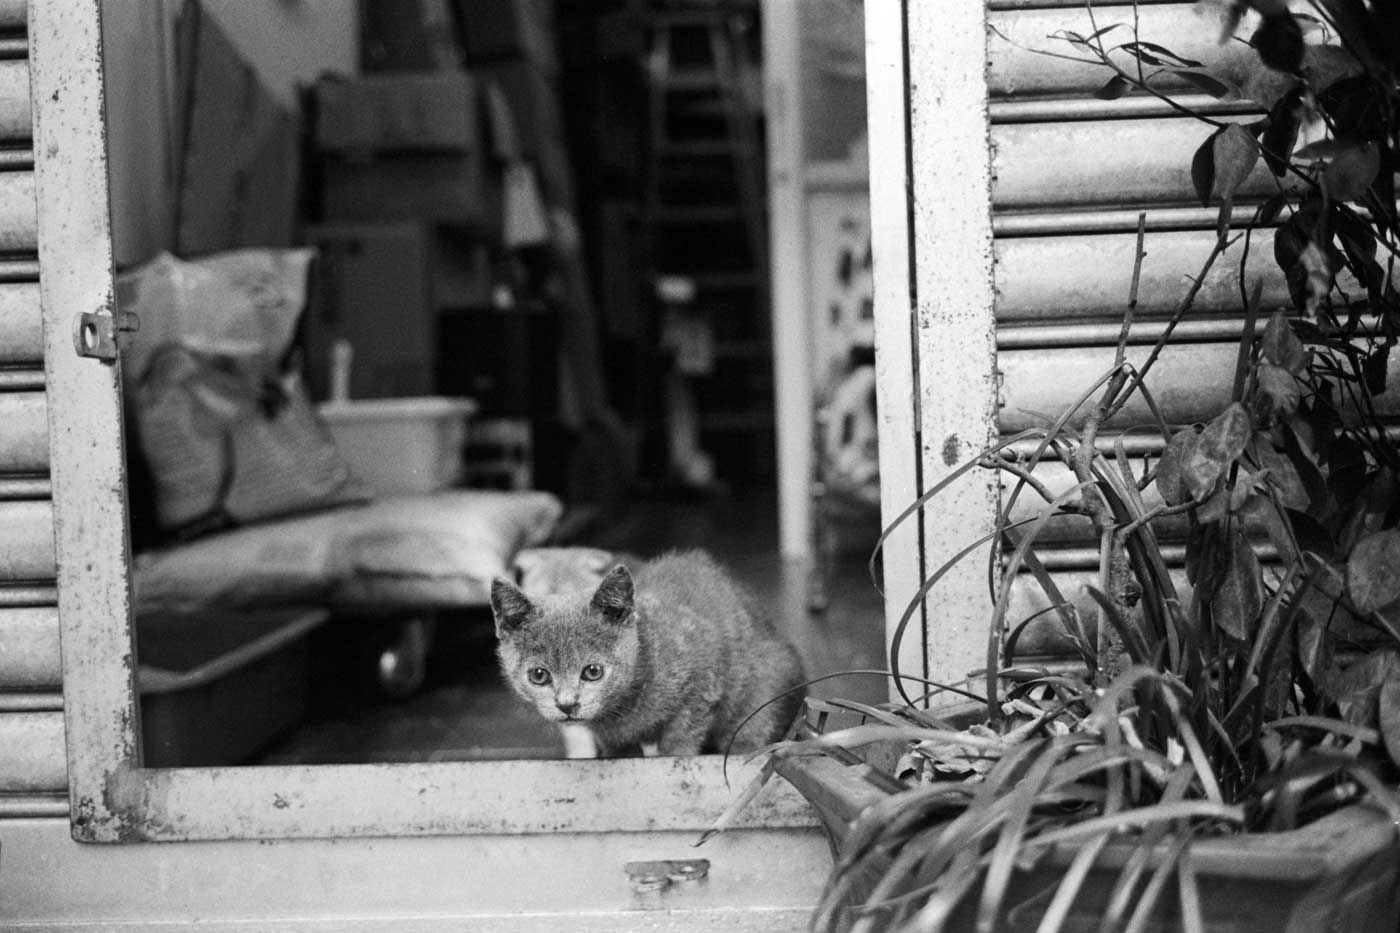 Leica-summicron-35mm-f2-8element-8-element-v1-version1-lens-review-blog-sharing-thoughts-compare-7element-gear-how-performance-baby-cat-kitten